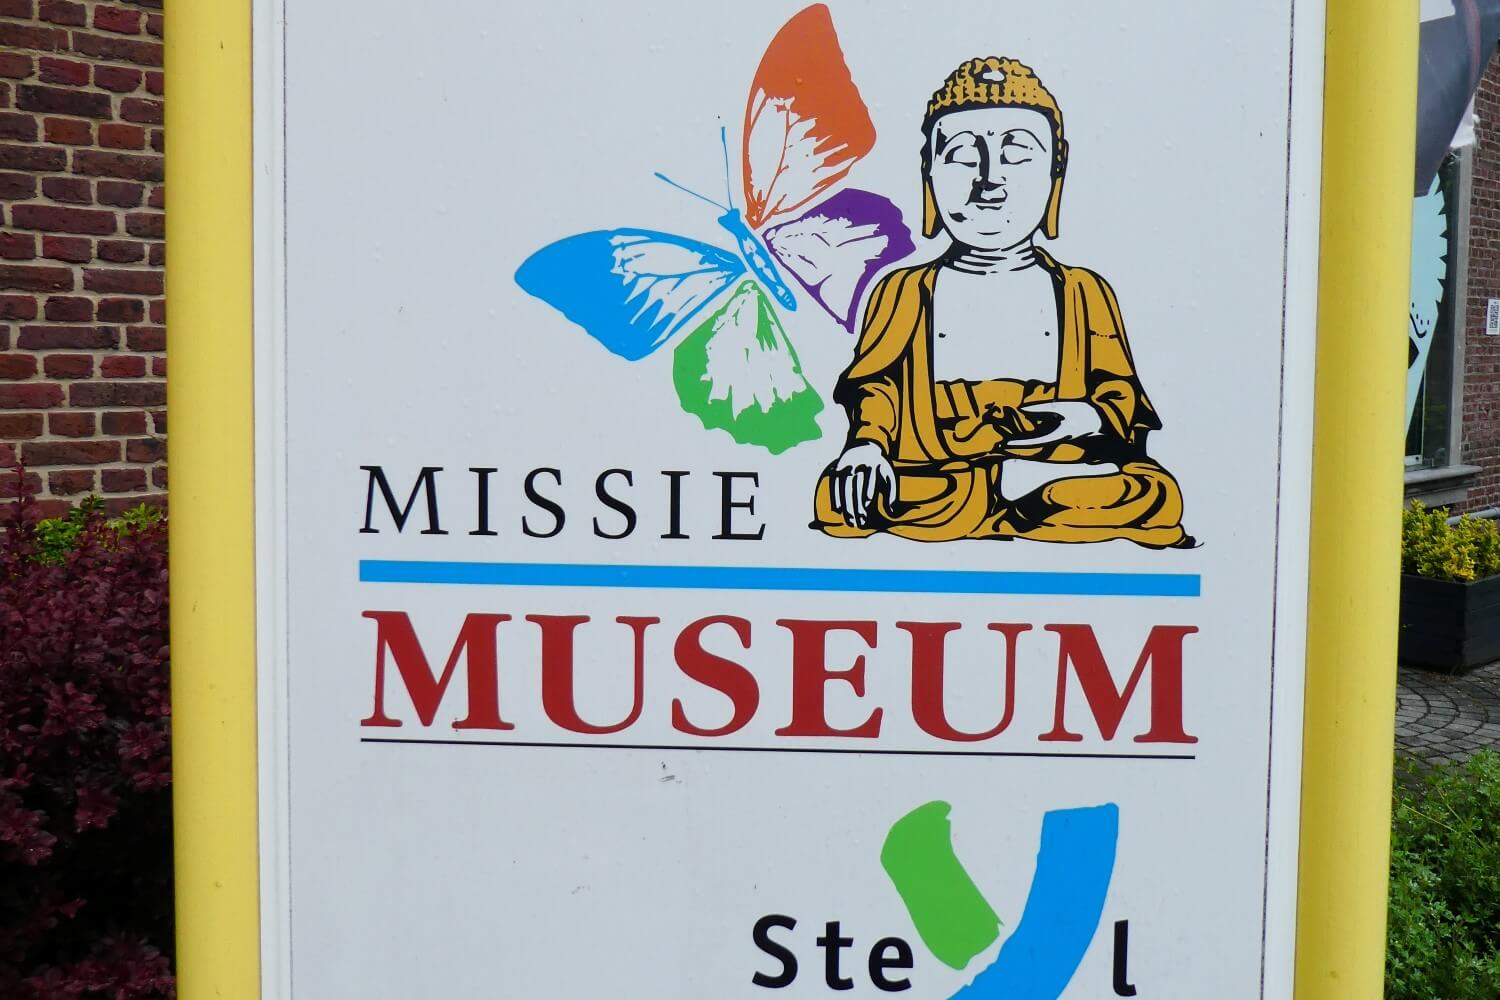 The Mission Museum in Steyl